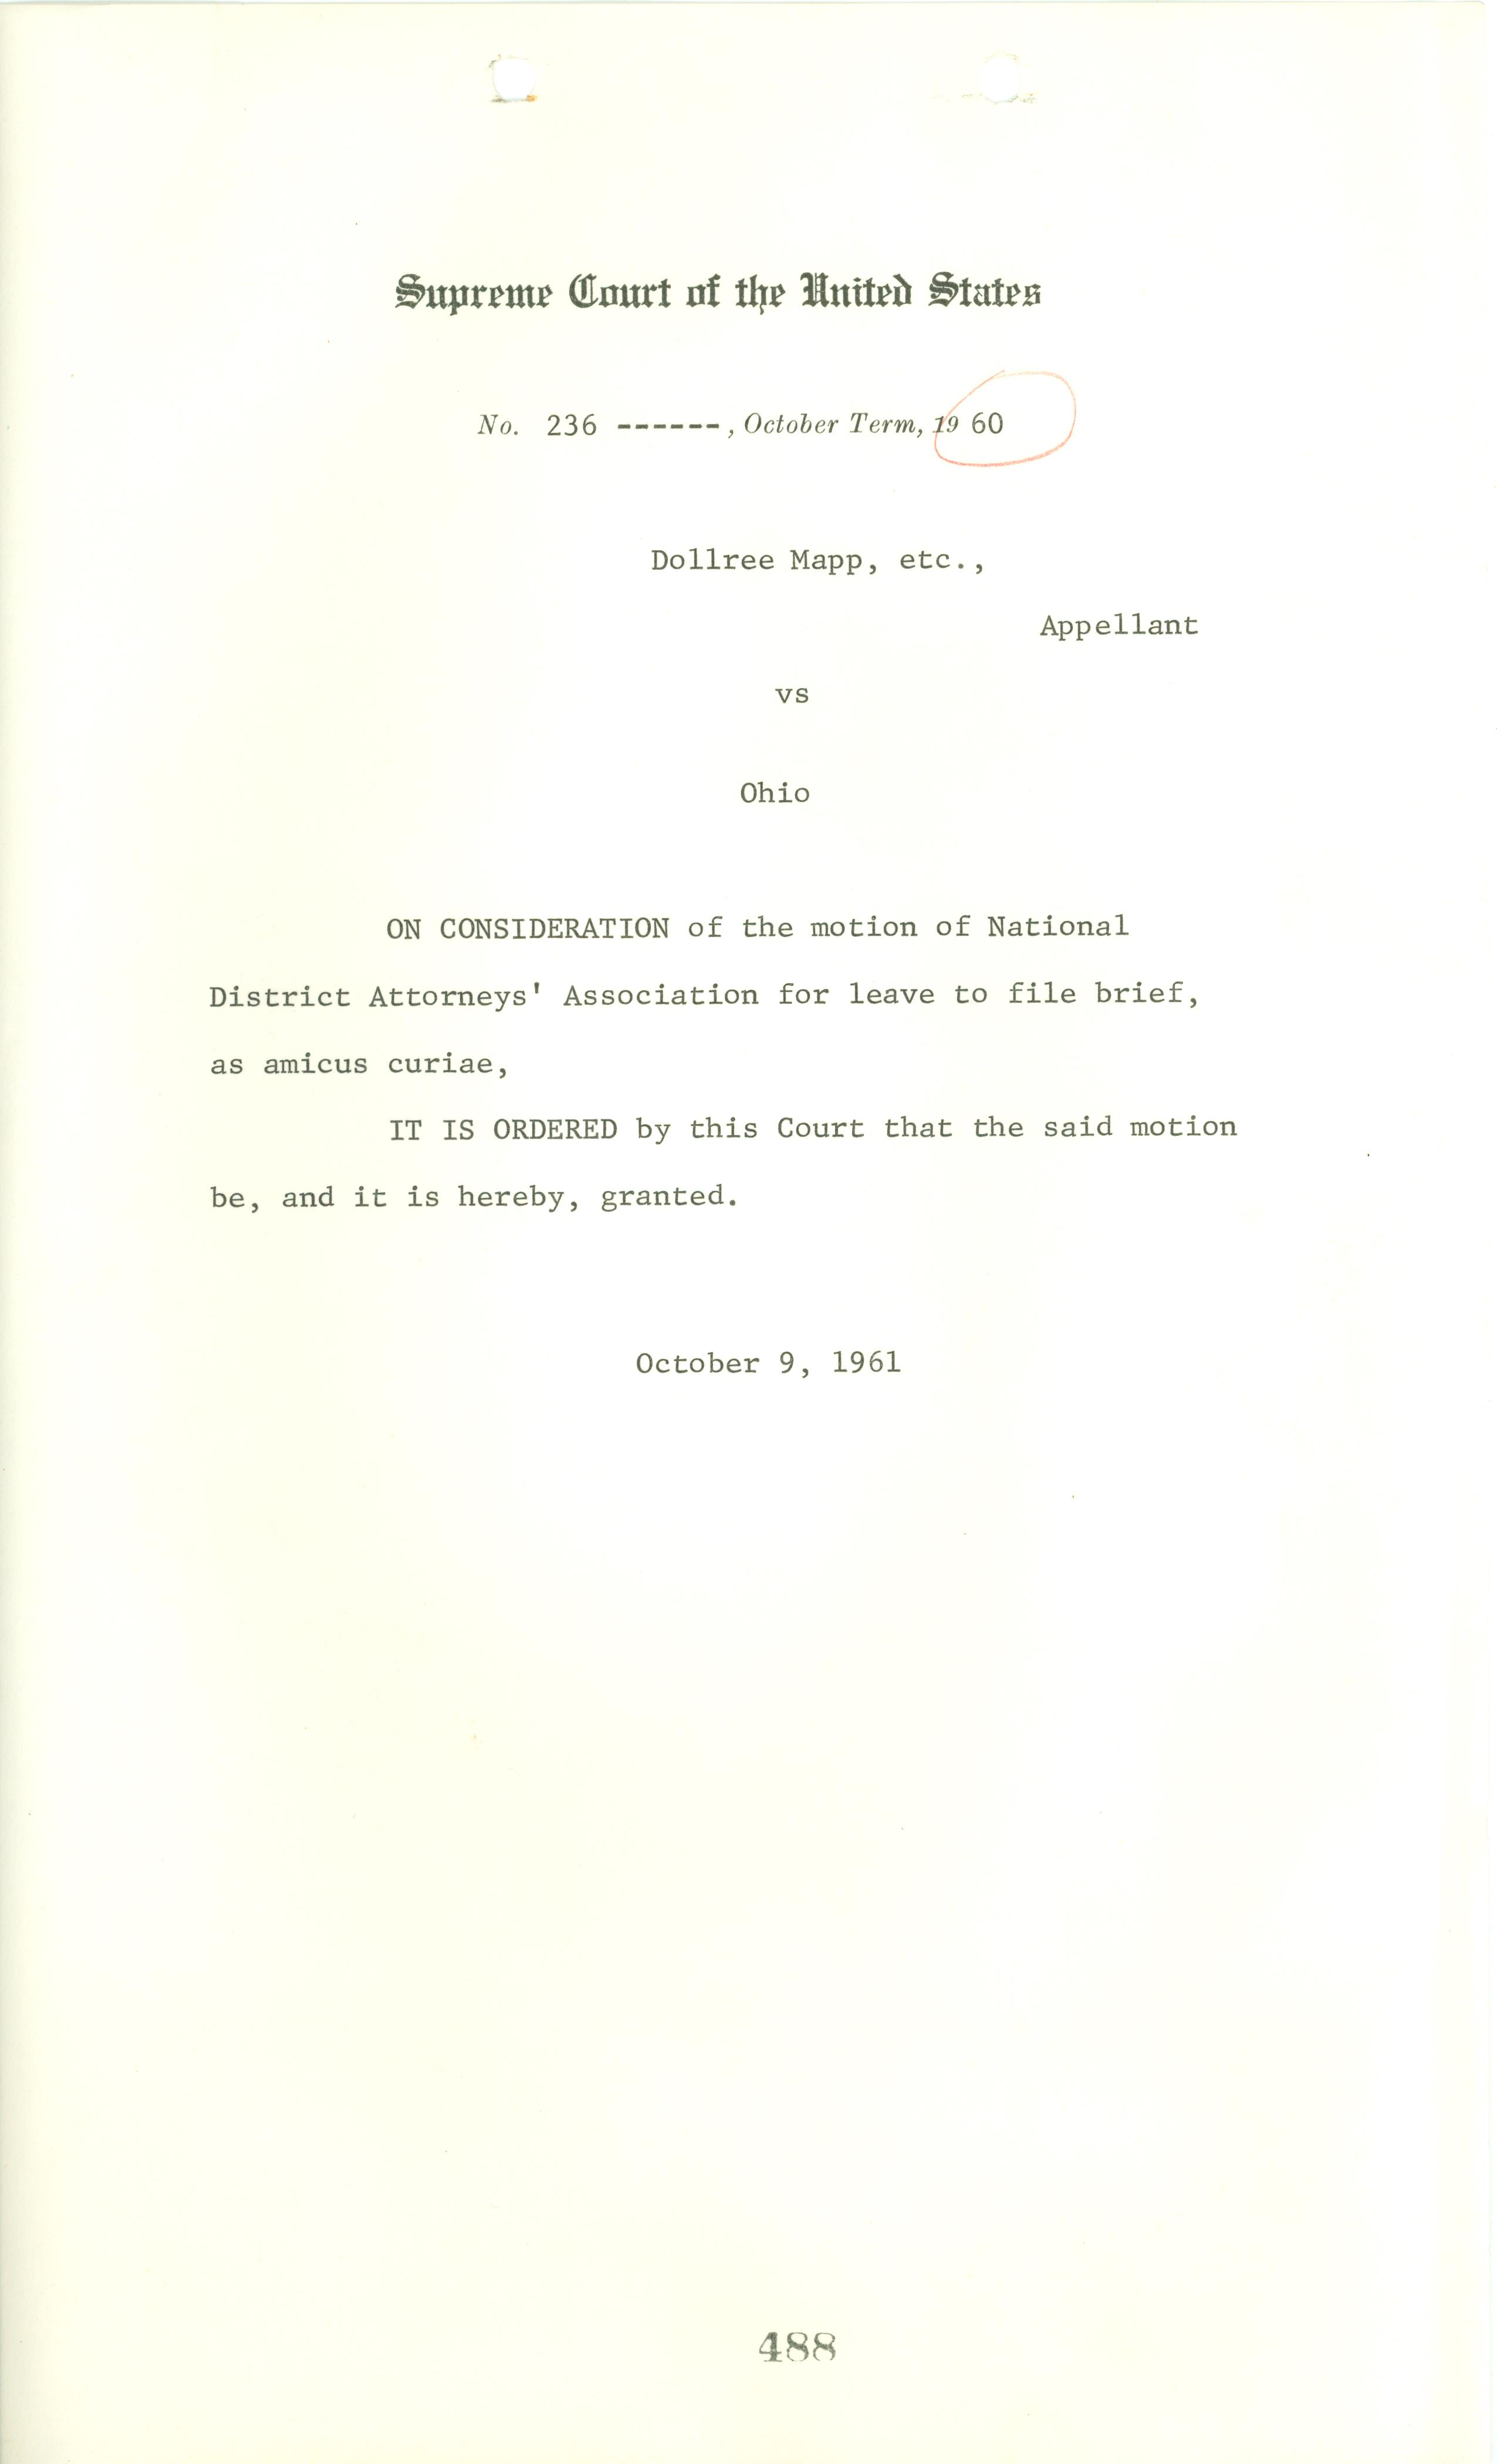 Amicus curiae submitted to the Supreme Court in Mapp v. Ohio, October 9, 1961, Records of the United States Supreme Court.